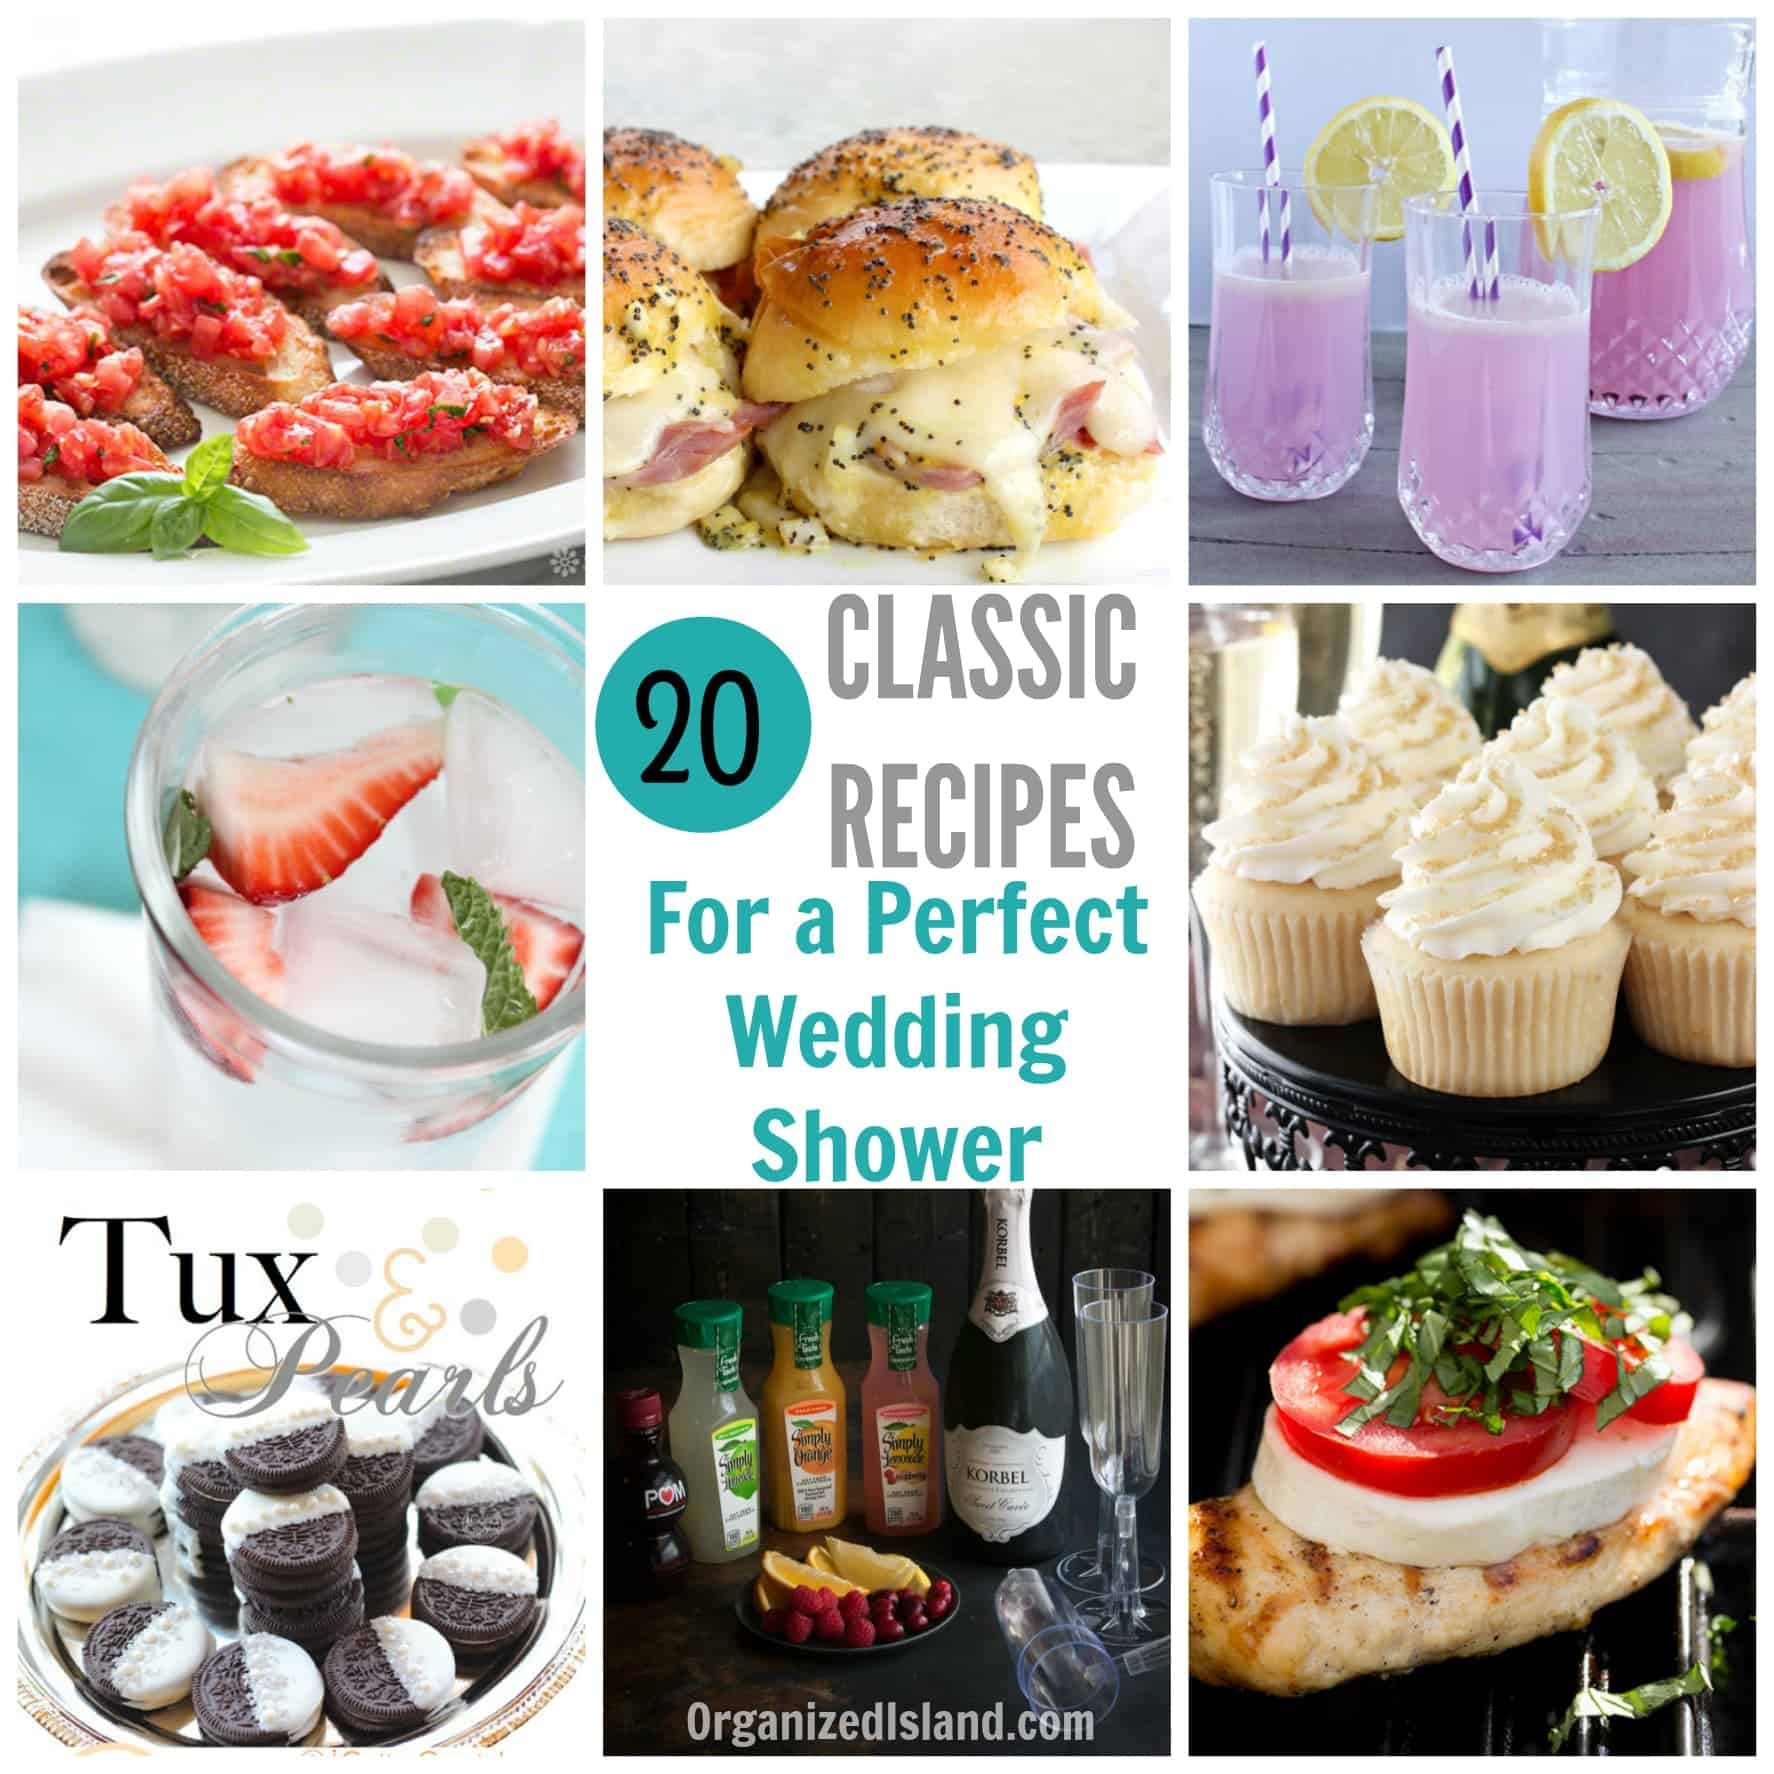 Bridal Shower Food Ideas Organized Island